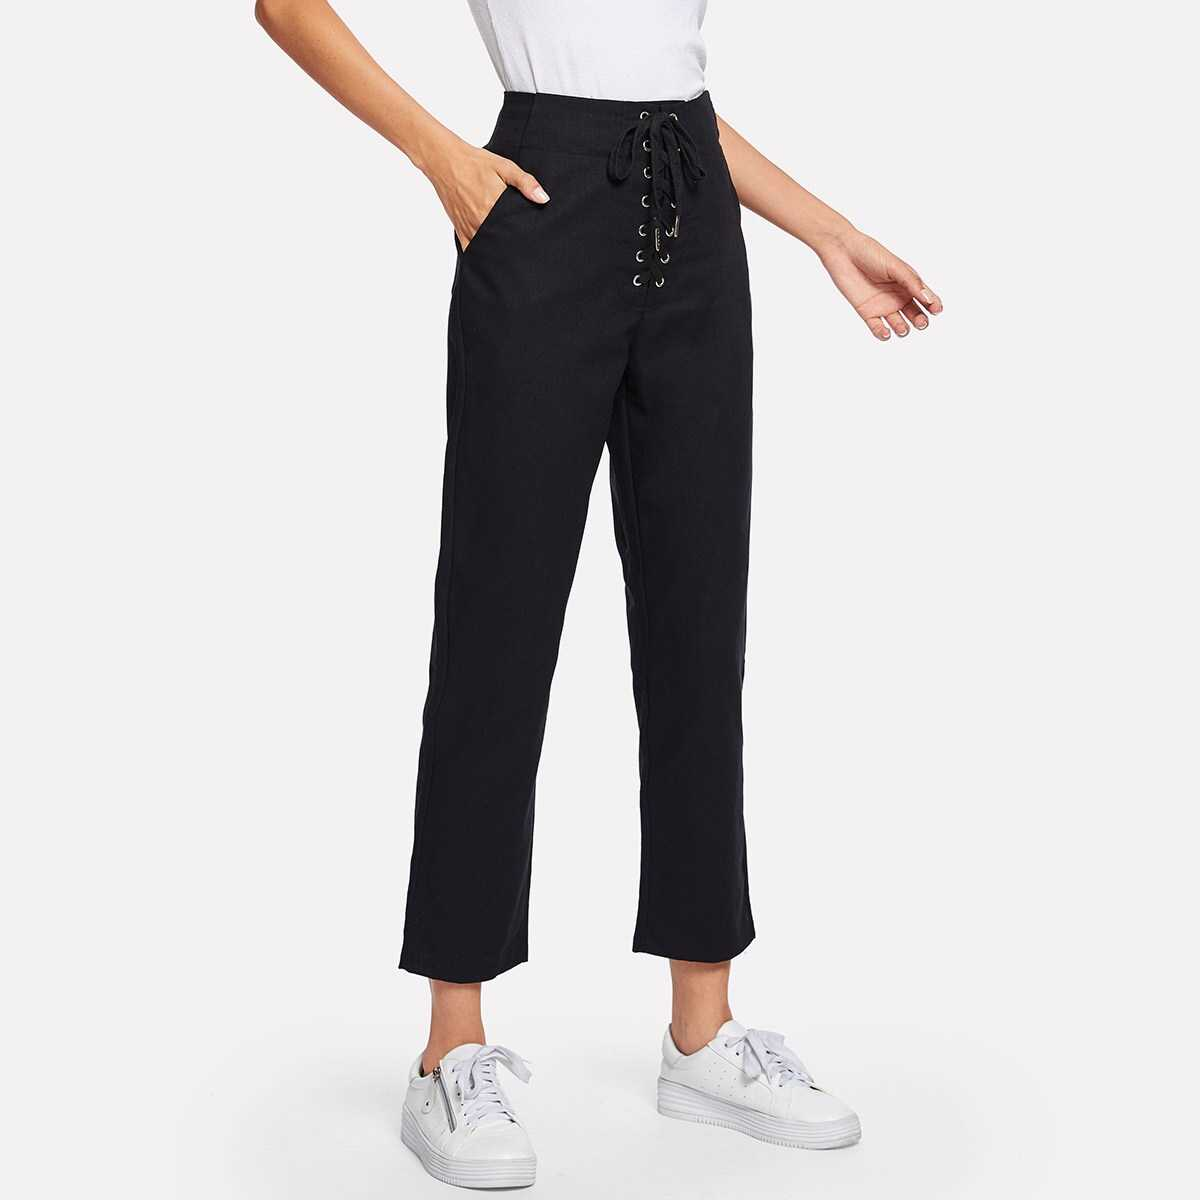 Lace Up Waist Solid Pants - Shein - GOOFASH